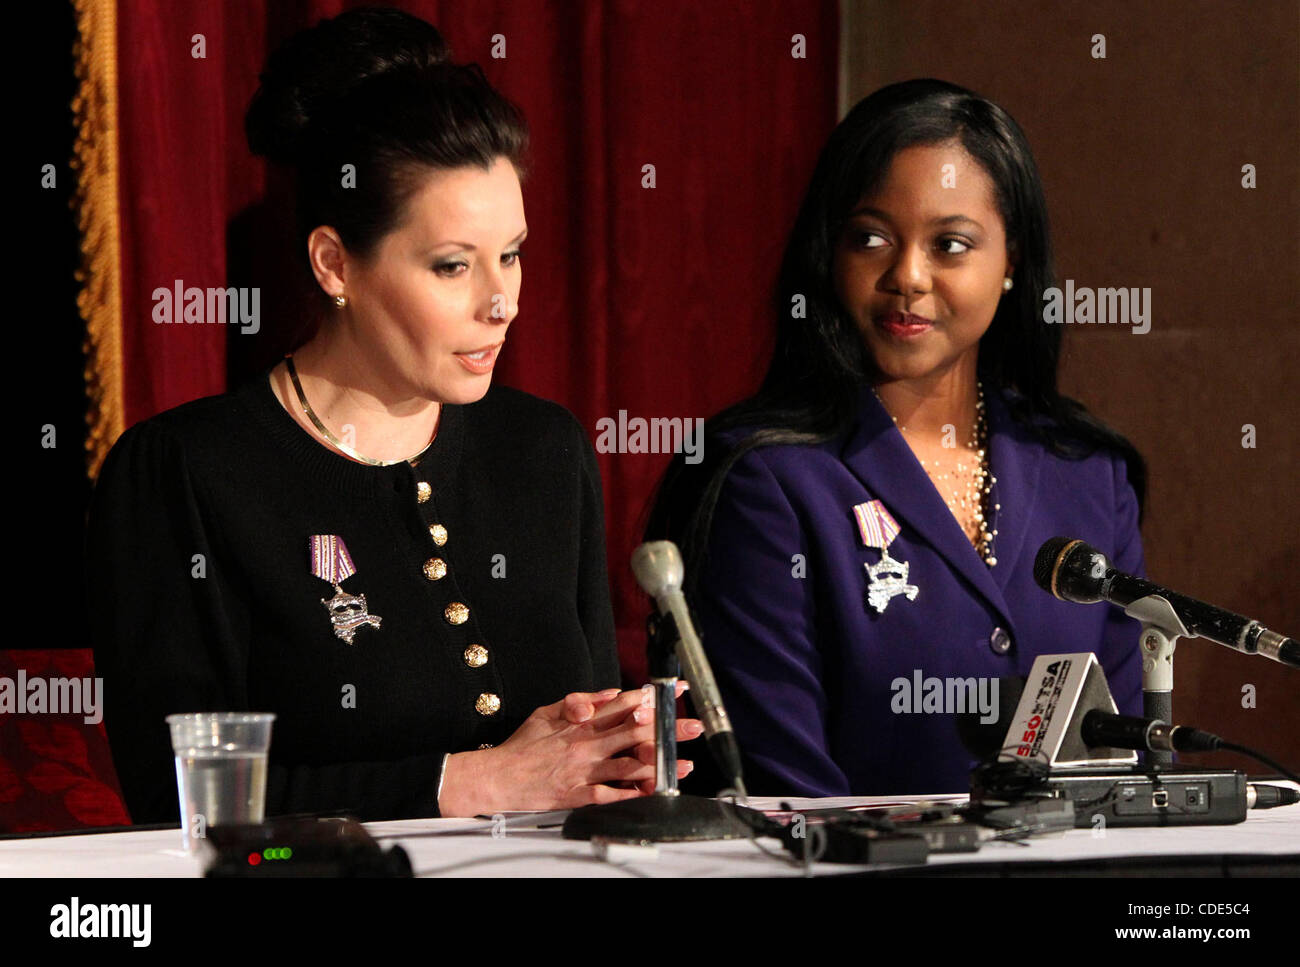 Feb. 22, 2011 - San Antonio, Texas - U.S. - Ashley Dixon, 21, (right) smiles at a news conference held Wednesday - Stock Image